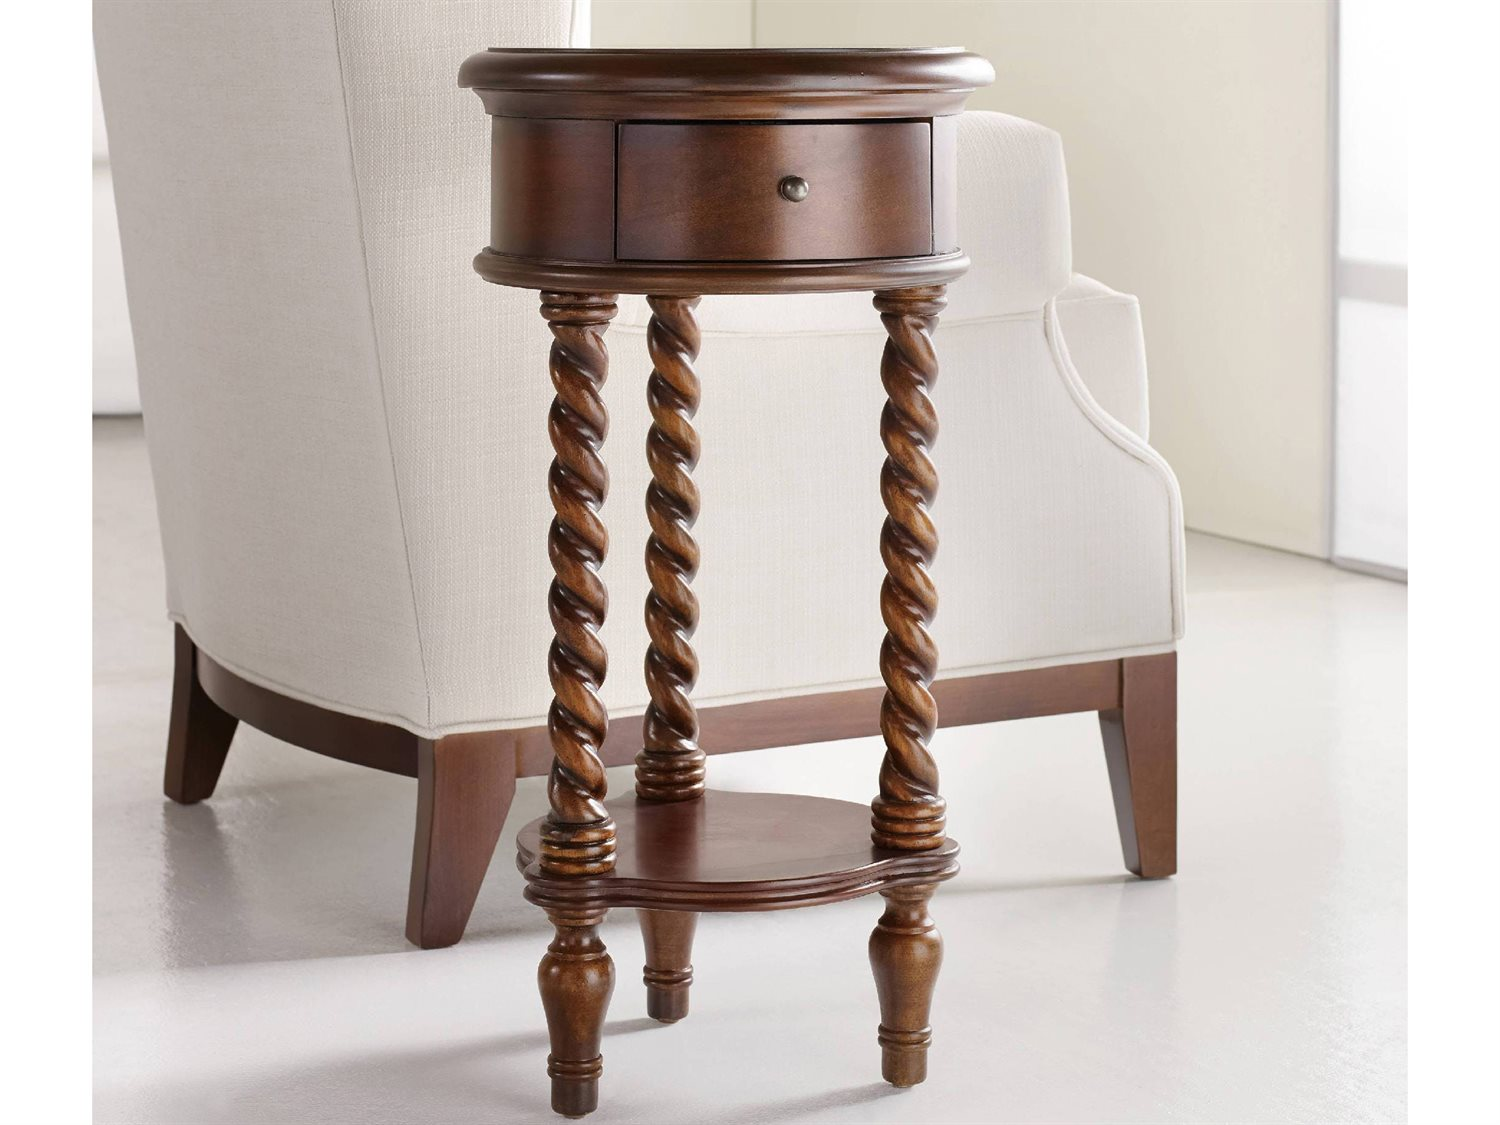 wide round accent end table hooker furniture maple cherry chestnut bunnings trestle chair design square repurposed doors small coffee with storage home accessories drum throne